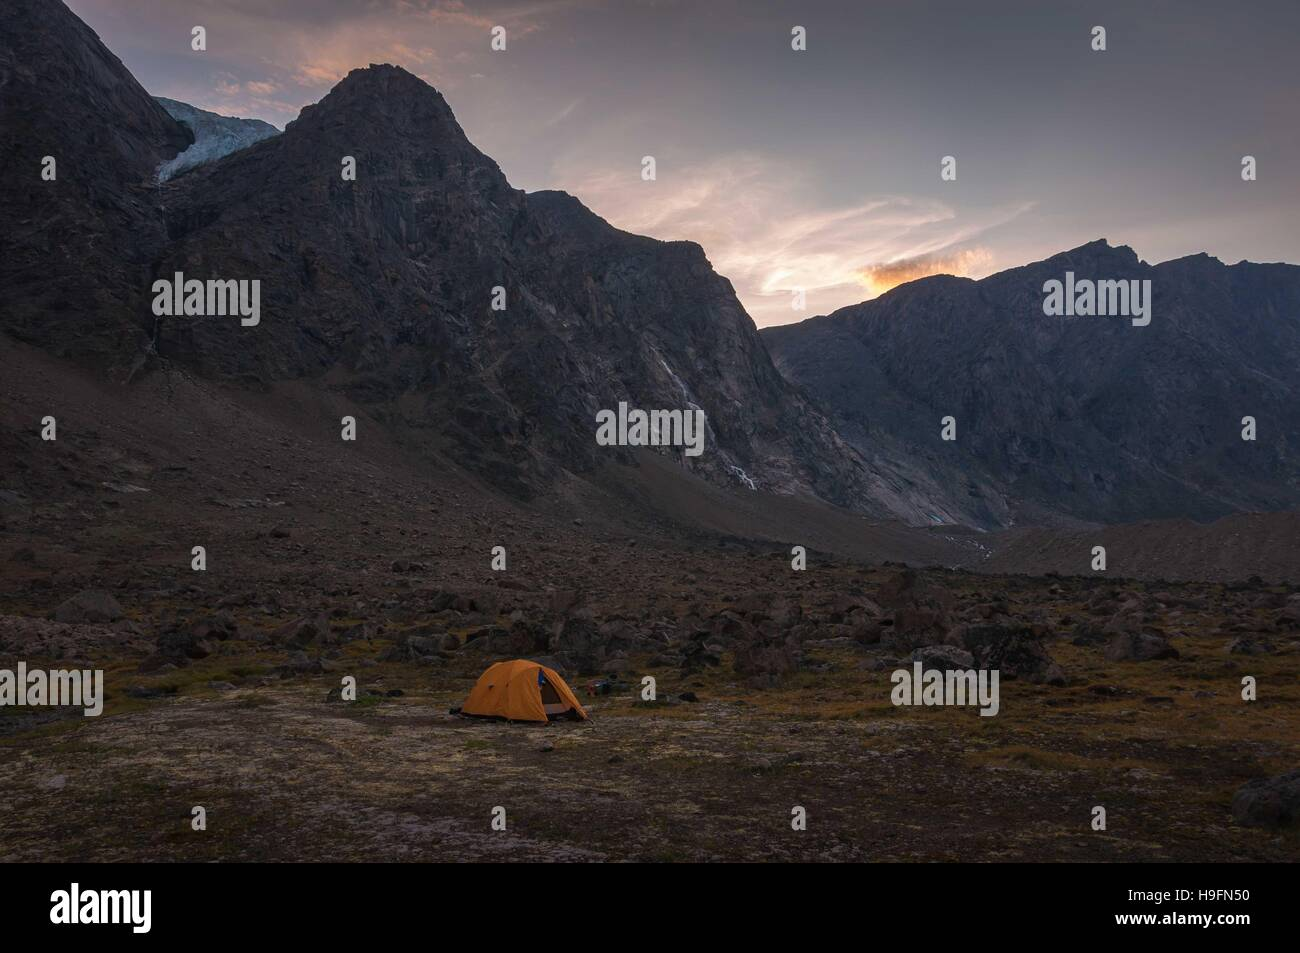 Base camp in Auyuittuq National Park scenery, Nunavut, Canada. - Stock Image